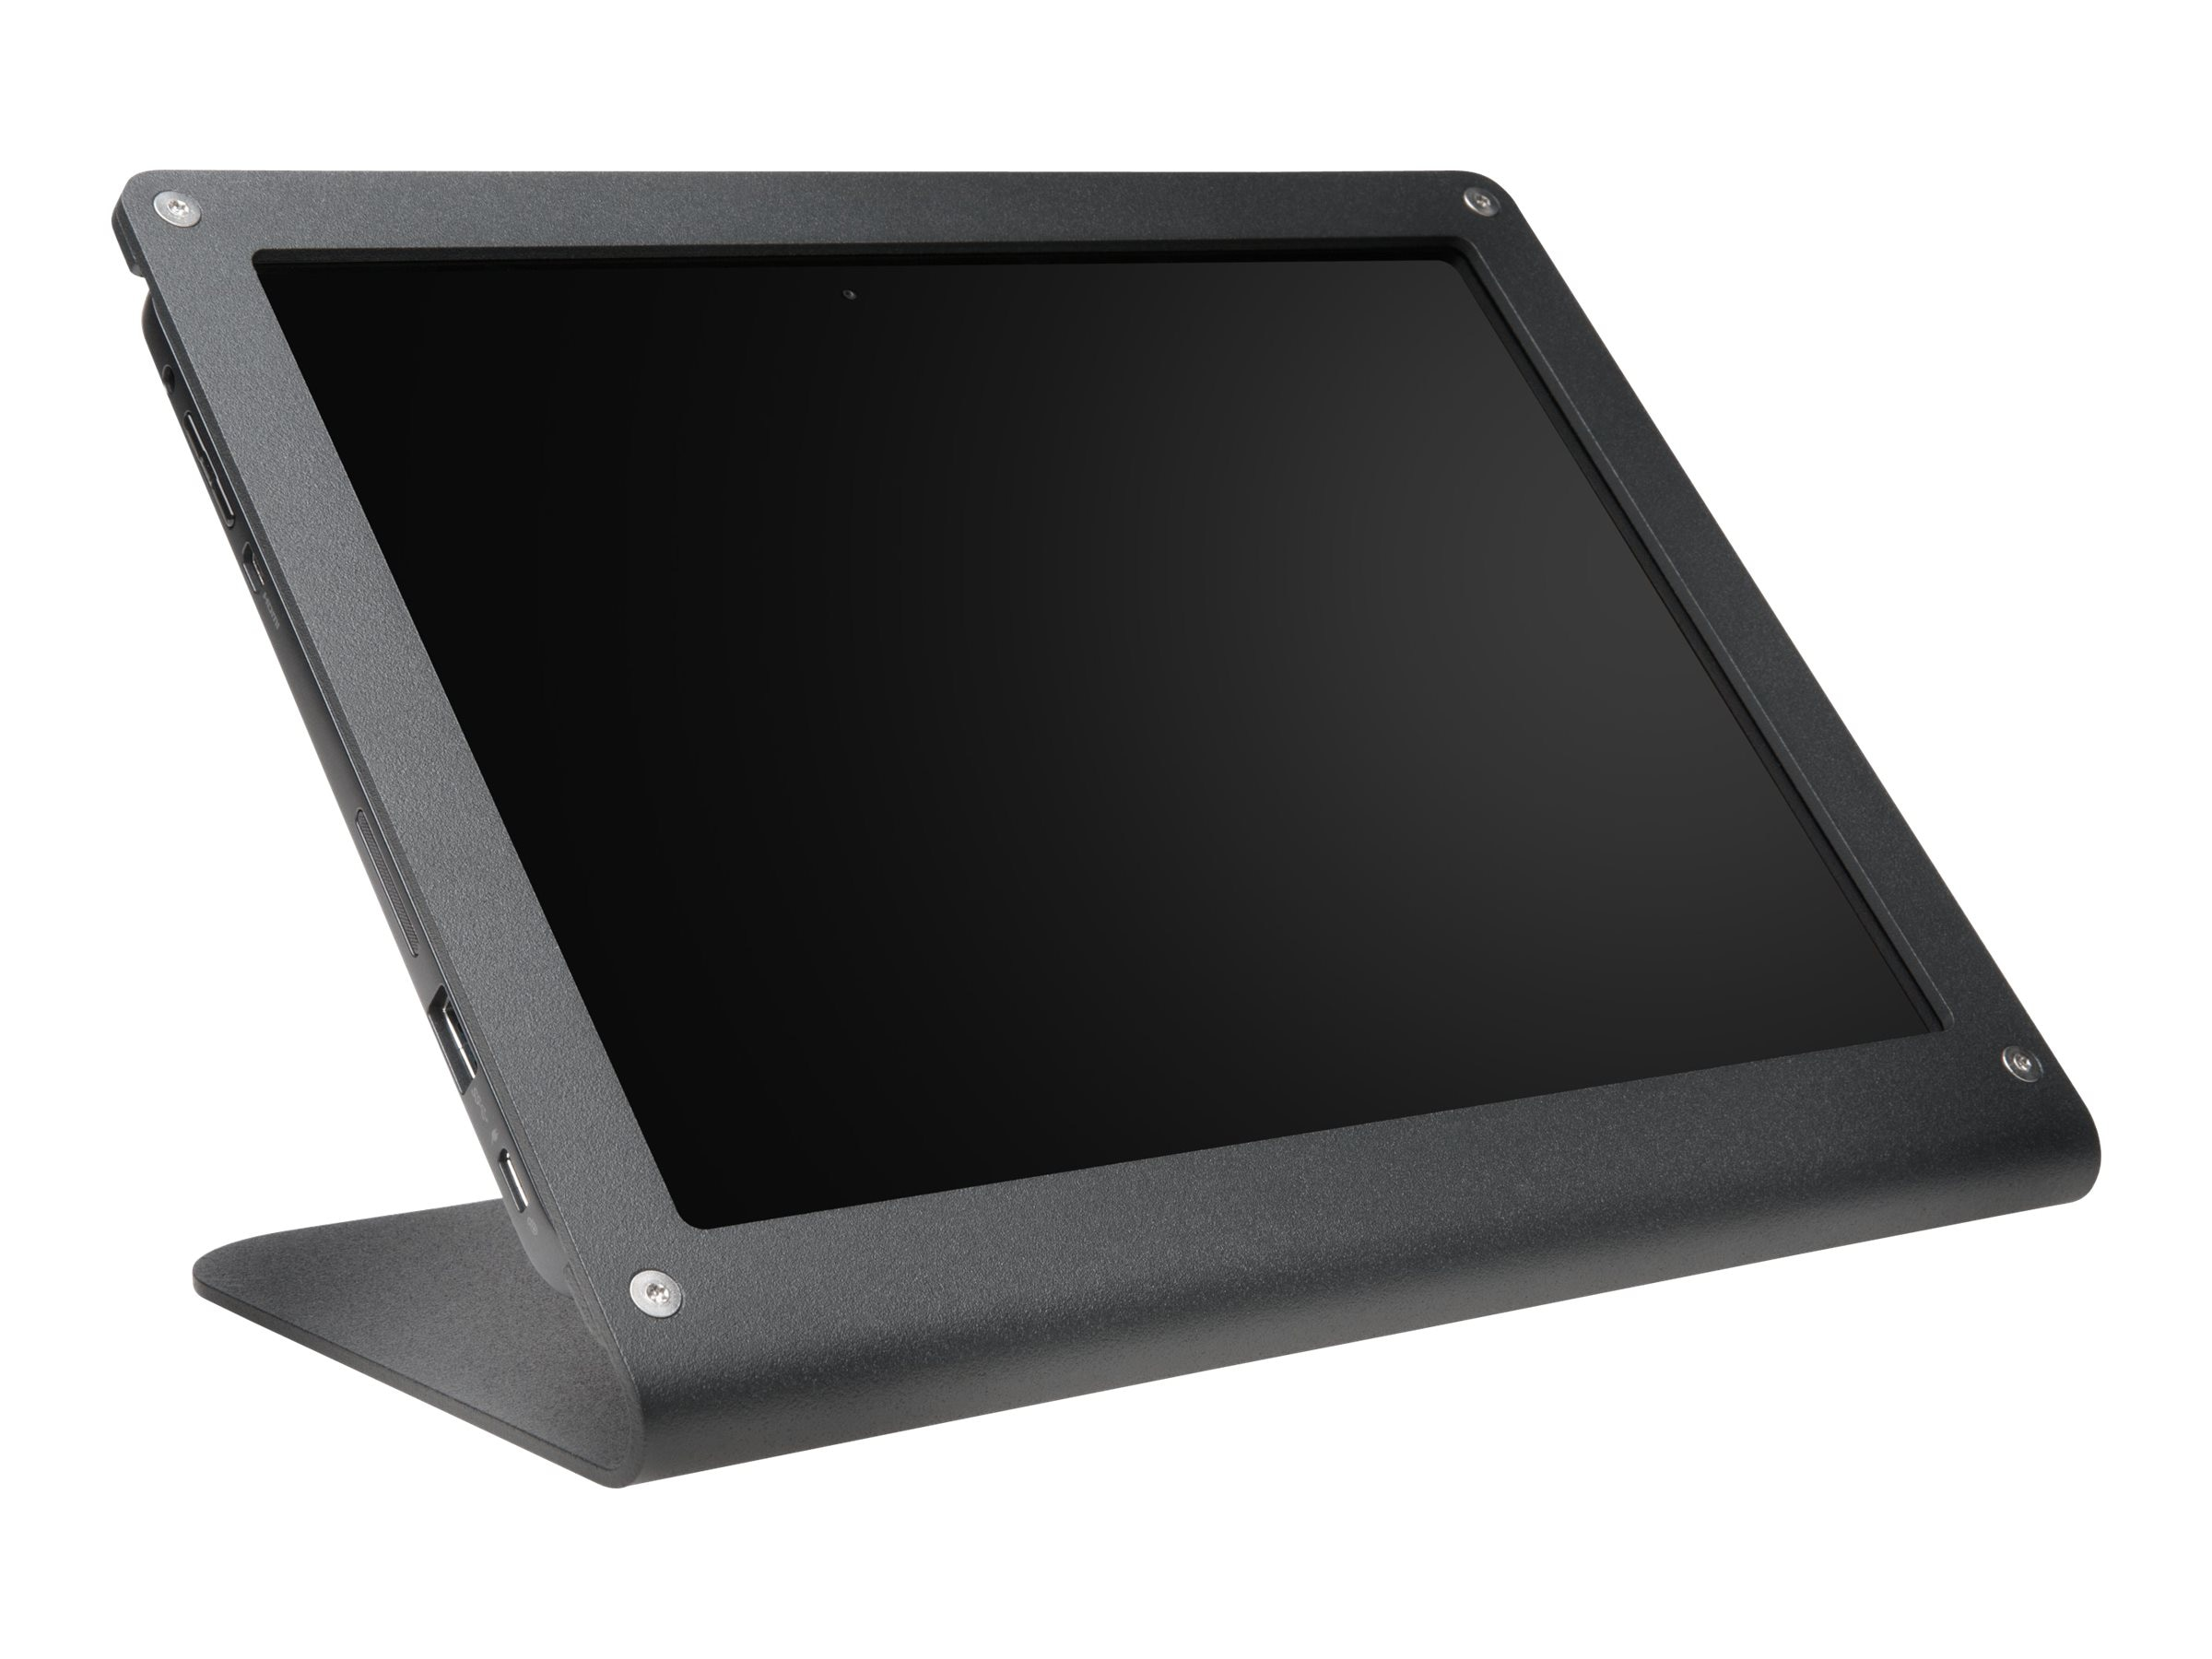 Kensington Windfall Stand for Dell Venue 10 Pro 5056, K67926US, 30819261, Security Hardware